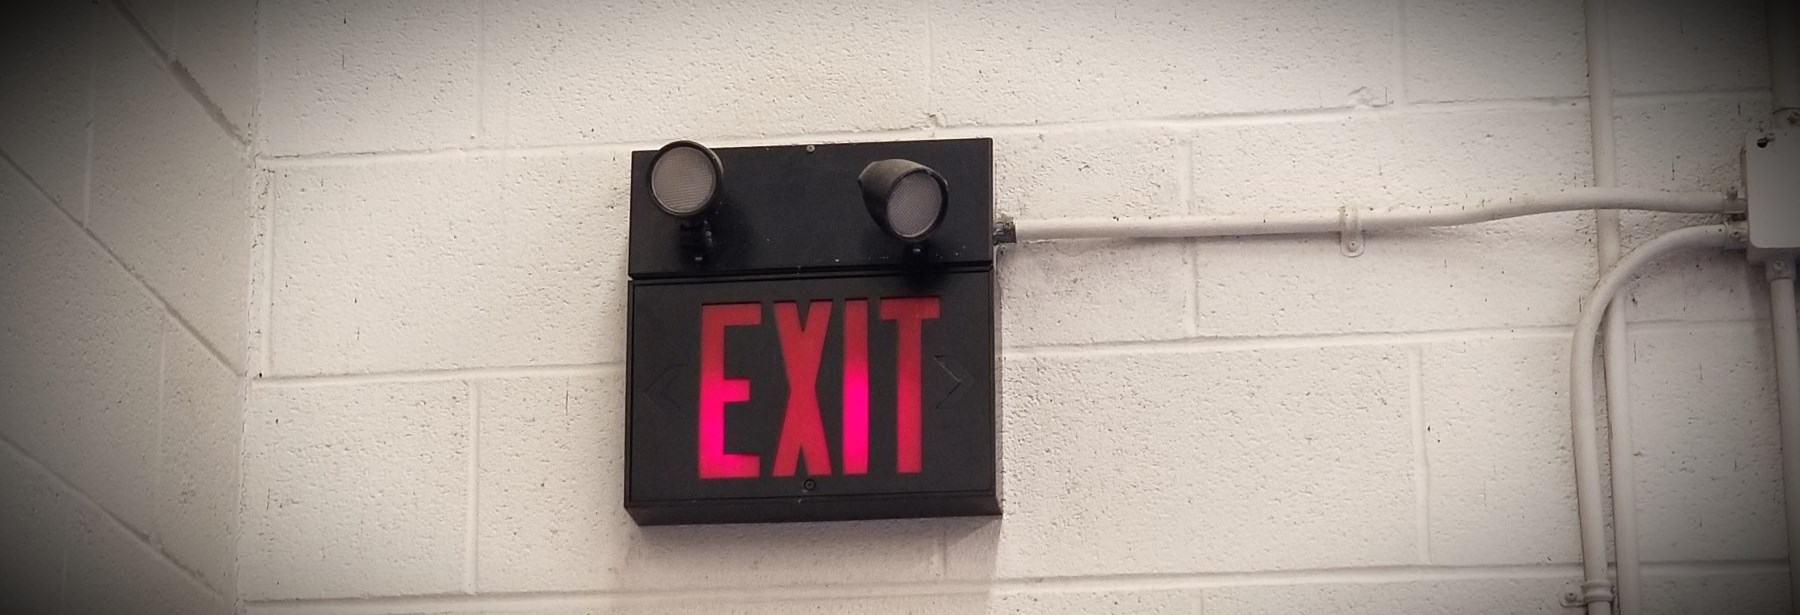 Exit sign inside a building on a wall